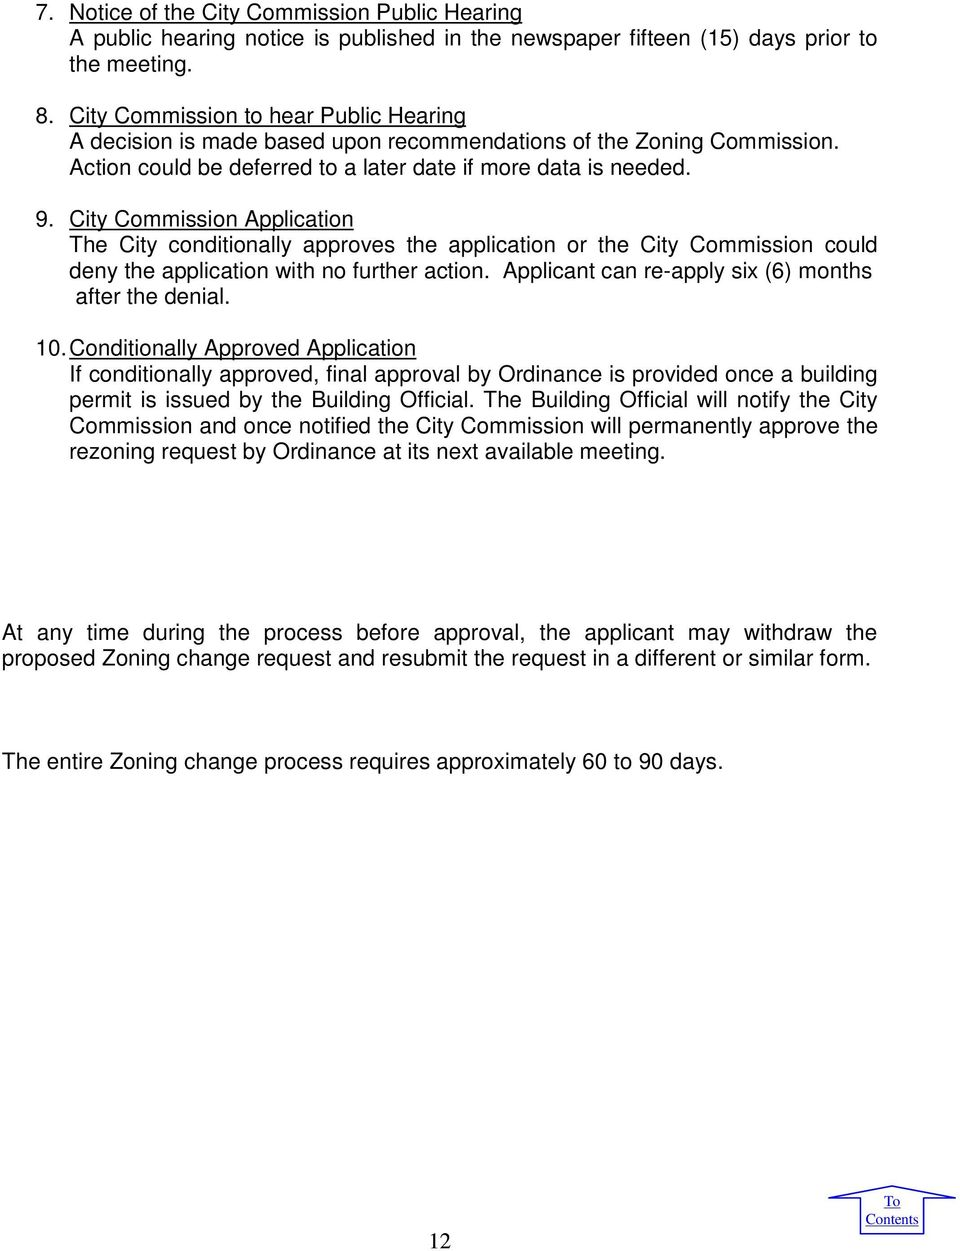 City Commission Application The City conditionally approves the application or the City Commission could deny the application with no further action.